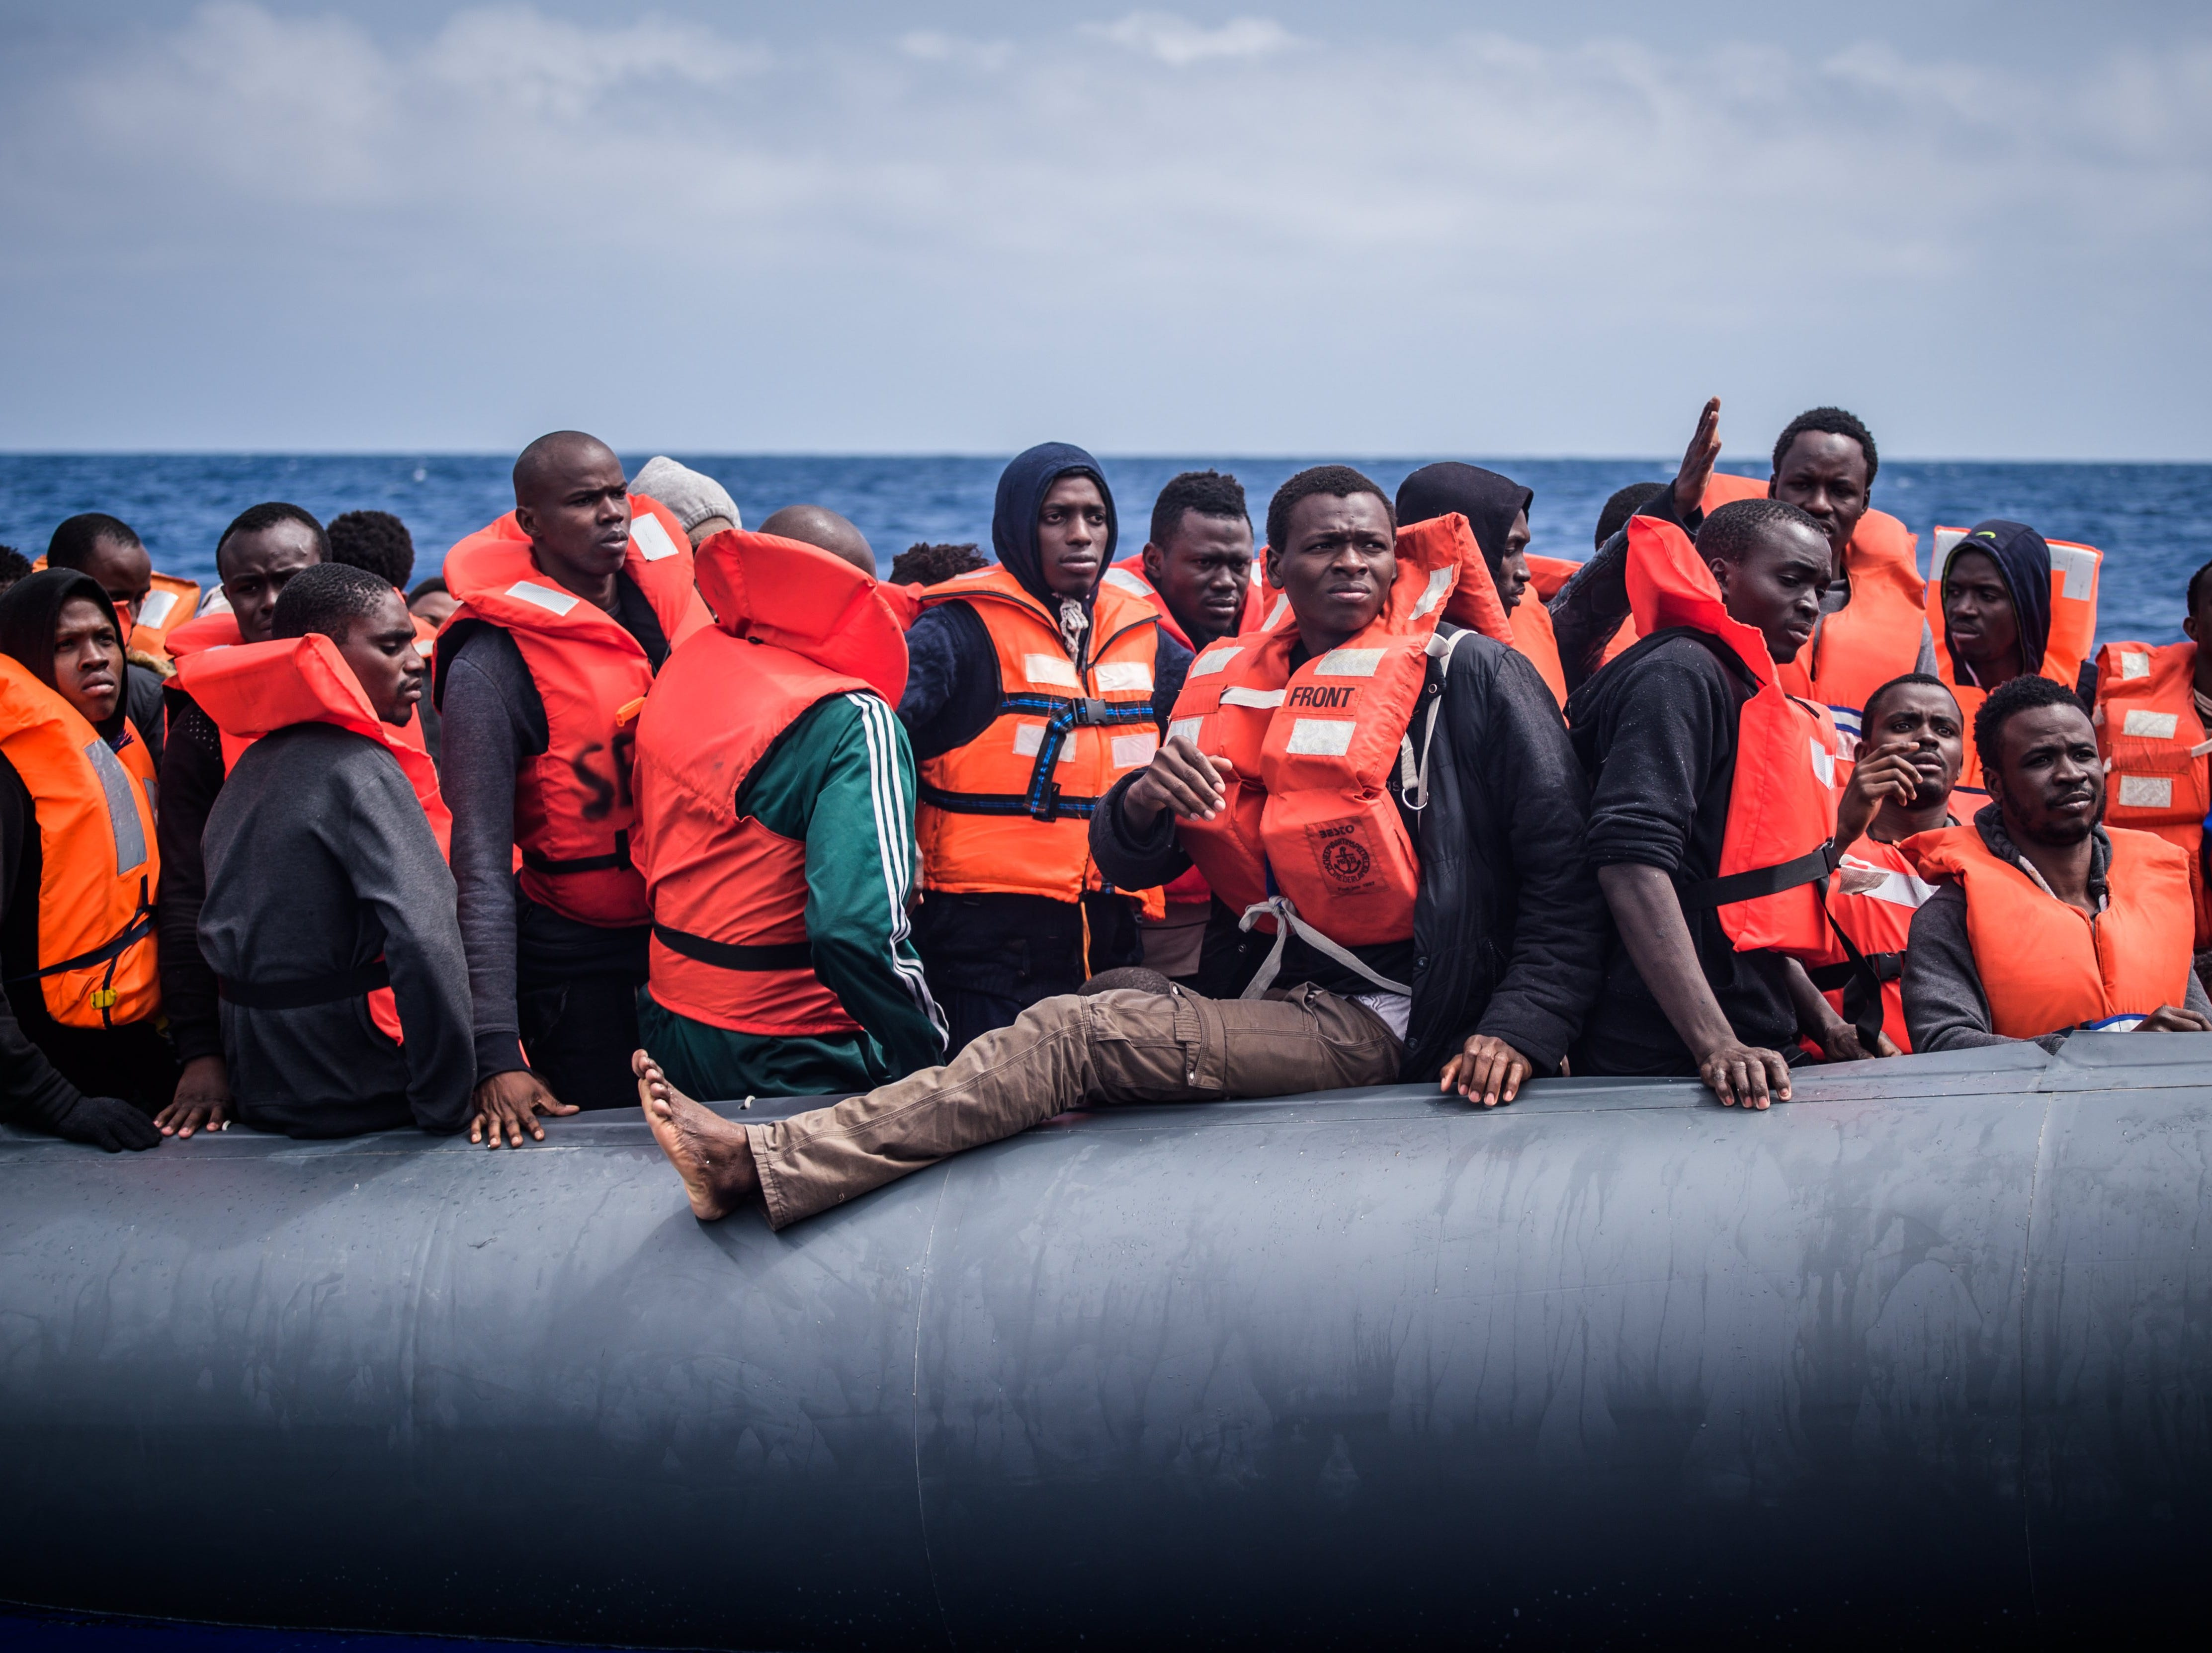 April 18, 2018: Refugees on a rubber dinghy are rescued by members of the NGO 'SOS Mediterranee' from the 'Aquarius' vessel during an operation to rescue migrants, about 50 kilometers off the Libyan coast, in the Mediterranean Sea. Approximately 100 people, mostly from western Africa, were rescue by the Aquarius crew after leaving the Libyan coast 10 hours before.